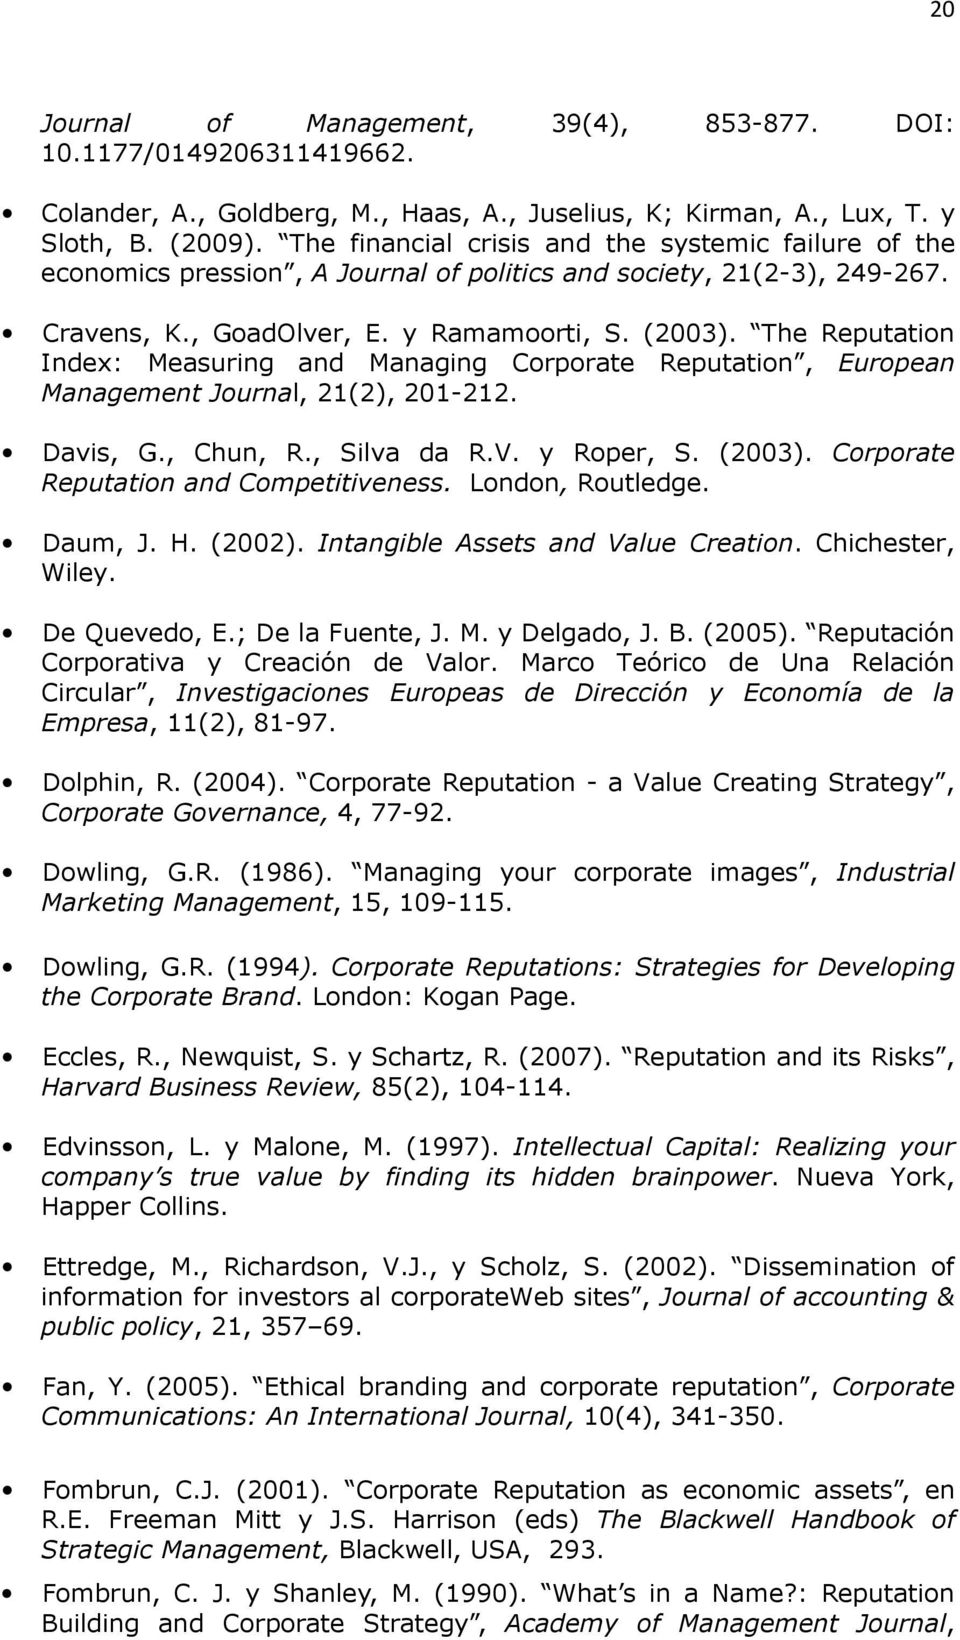 The Reputation Index: Measuring and Managing Corporate Reputation, European Management Journal, 21(2), 201-212. Davis, G., Chun, R., Silva da R.V. y Roper, S. (2003).